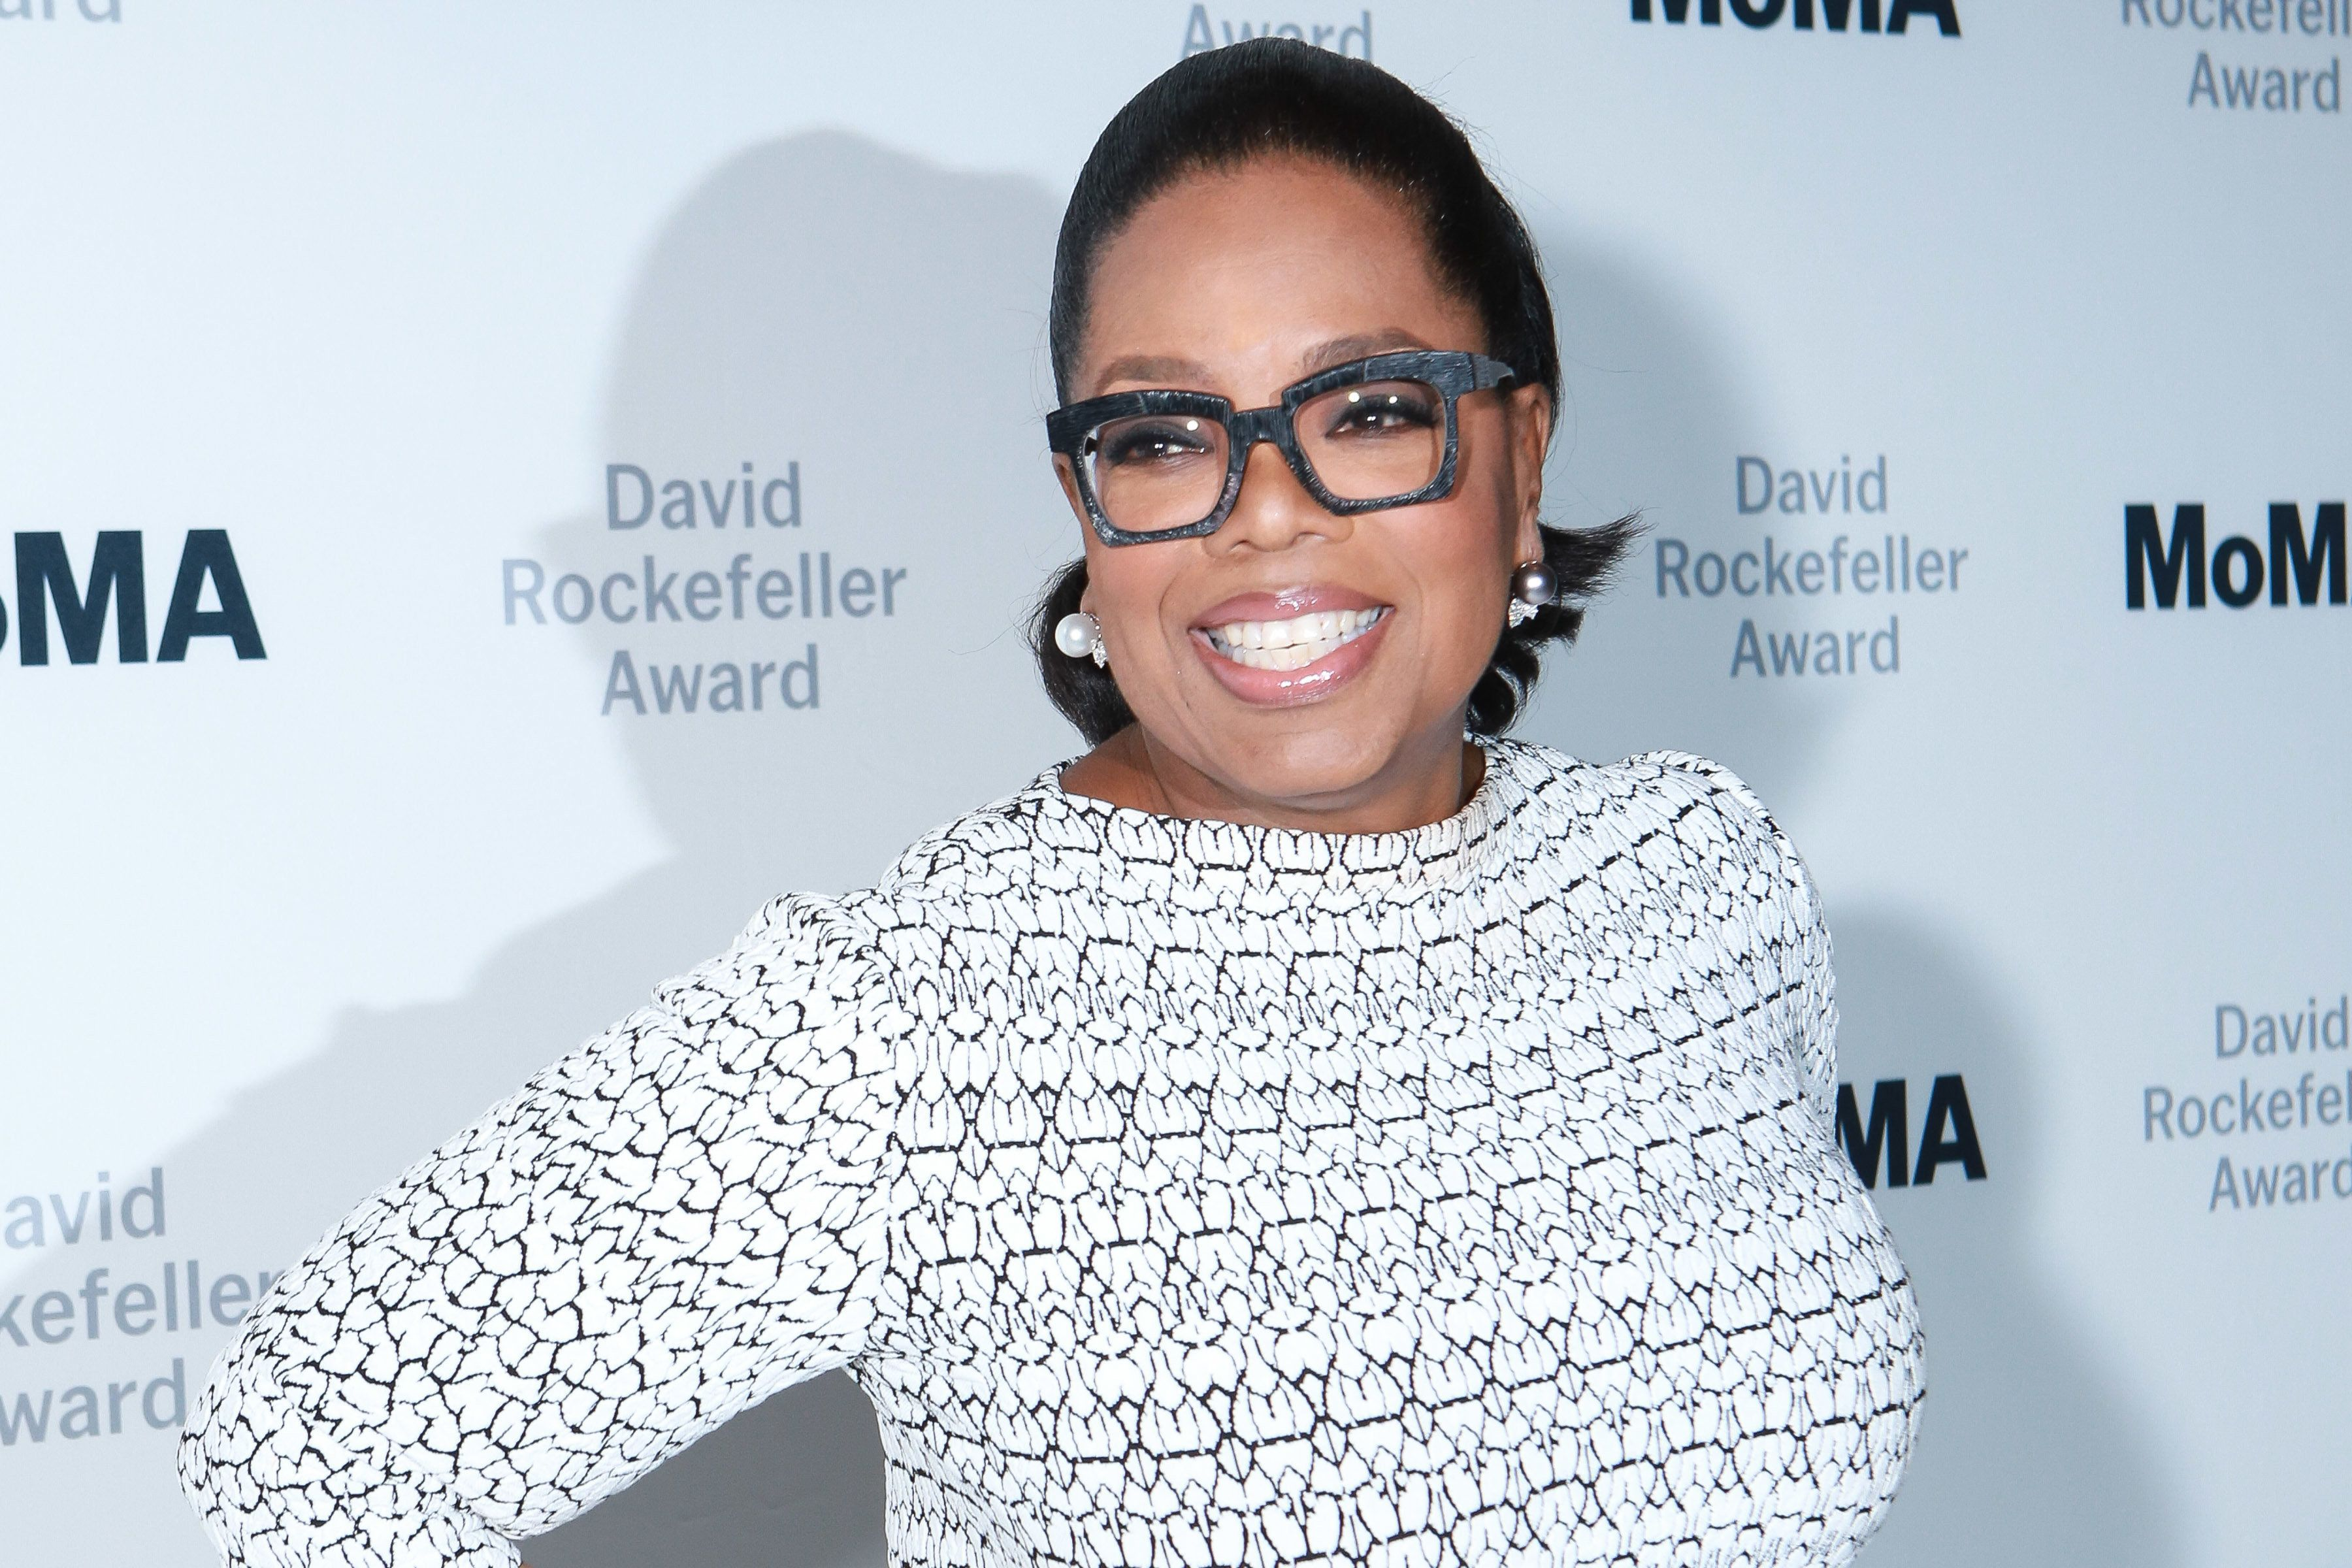 NEW YORK, NY - MARCH 06:  Oprah Winfrey during the 2018 MoMA David Rockefeller Award Luncheon Honoring Oprah Winfrey on March 6, 2018 in New York City.  (Photo by Gonzalo Marroquin/Patrick McMullan via Getty Images)